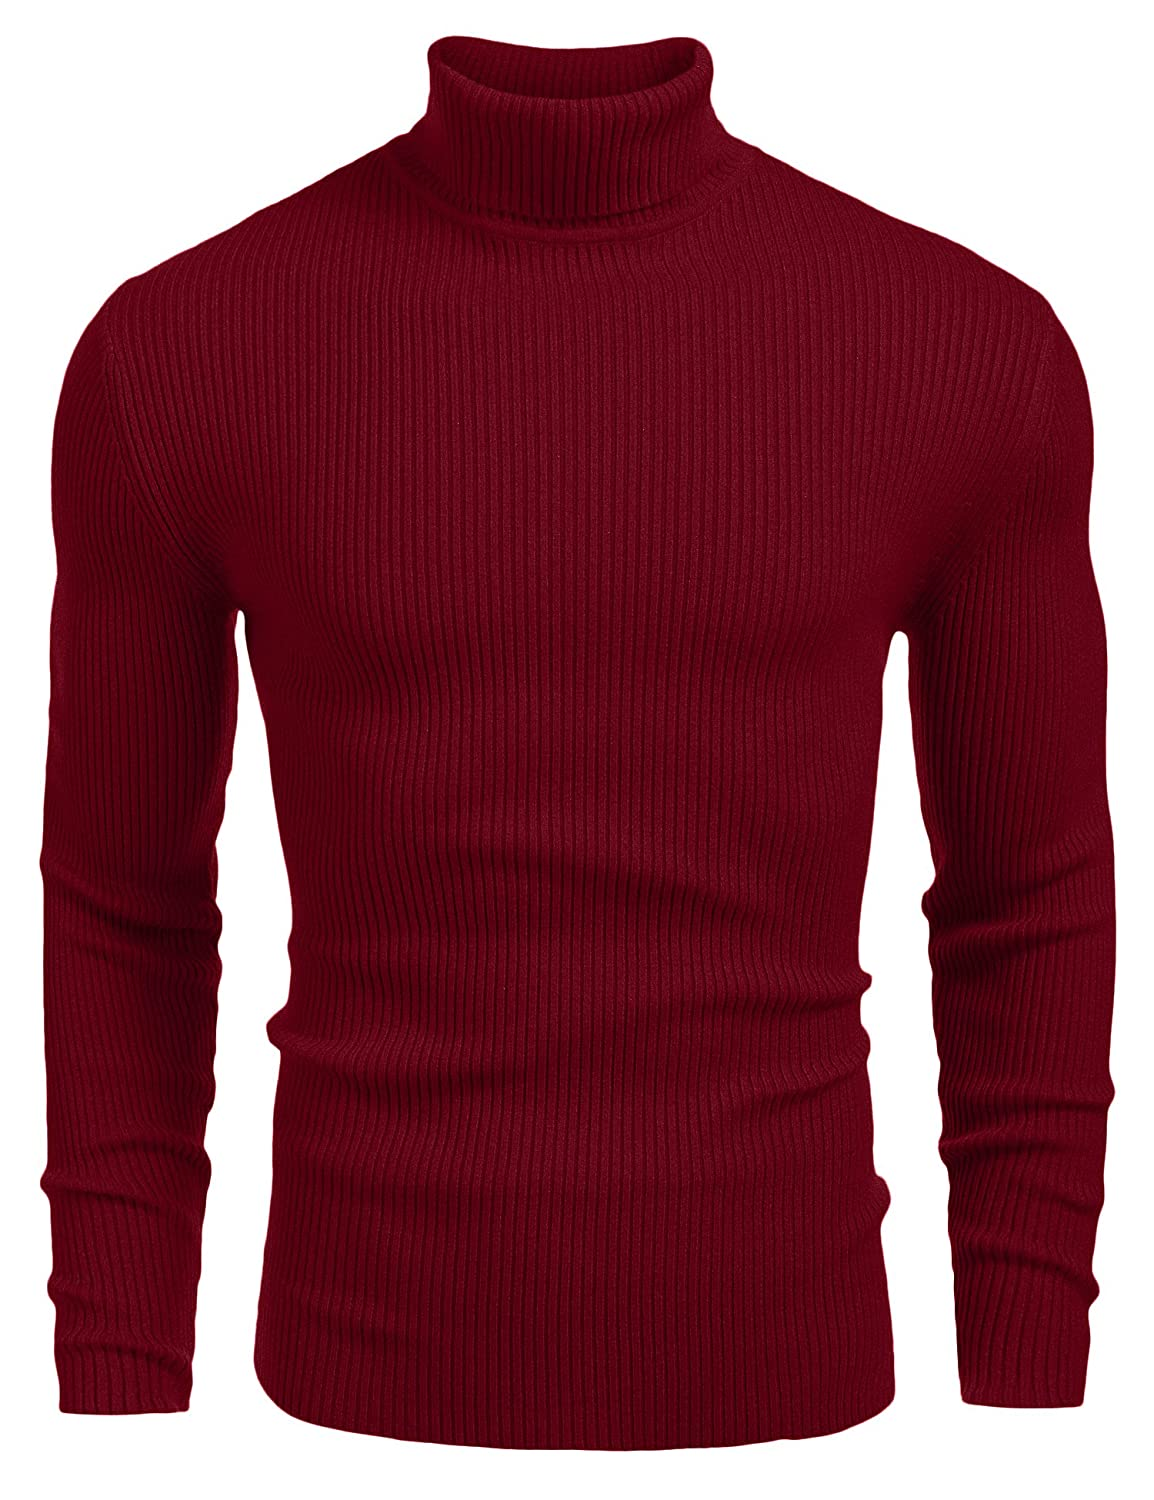 0d82254ad309 COOFANDY Mens Ribbed Slim Fit Knitted Pullover Turtleneck Sweater AS12240725